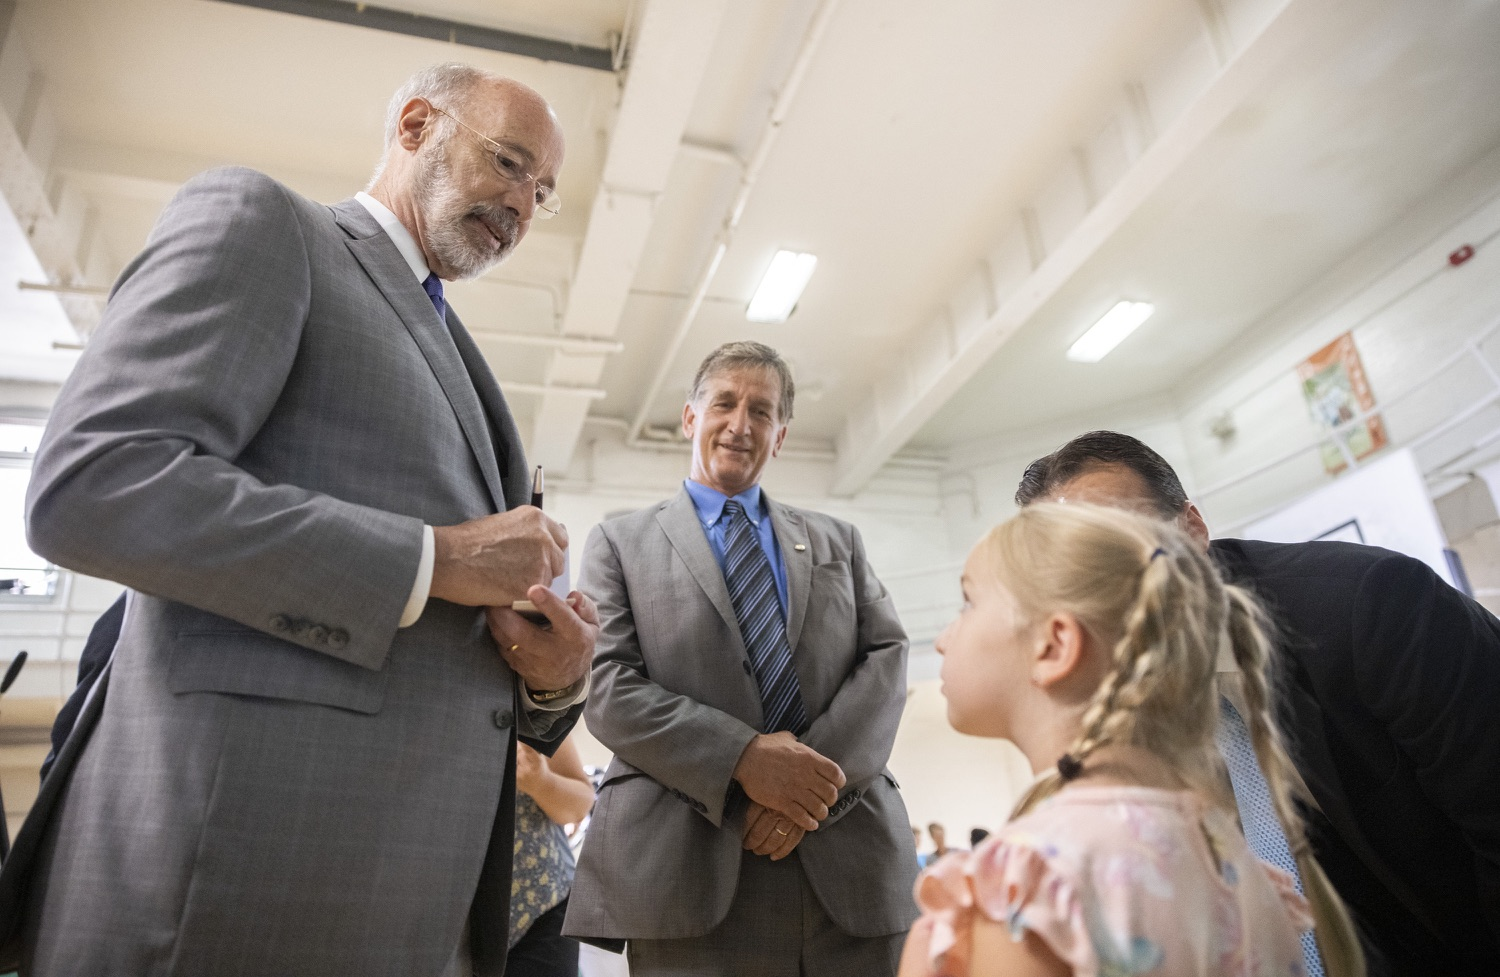 """<a href=""""https://filesource.wostreaming.net/commonwealthofpa/photo/18940_gov_childhooded_dz_017.jpg"""" target=""""_blank"""">⇣Download Photo<br></a>Pennsylvania Governor Tom Wolf signing an autograph.  Governor Tom Wolf today was joined by advocates and legislative members to celebrate the $30 million increase in early childhood education funding in the state budget at the YMCA in Reading. This new funding will allow an additional 3,270 children to enroll in the states high-quality early learning programs.  Reading, PA - July 19, 2021"""